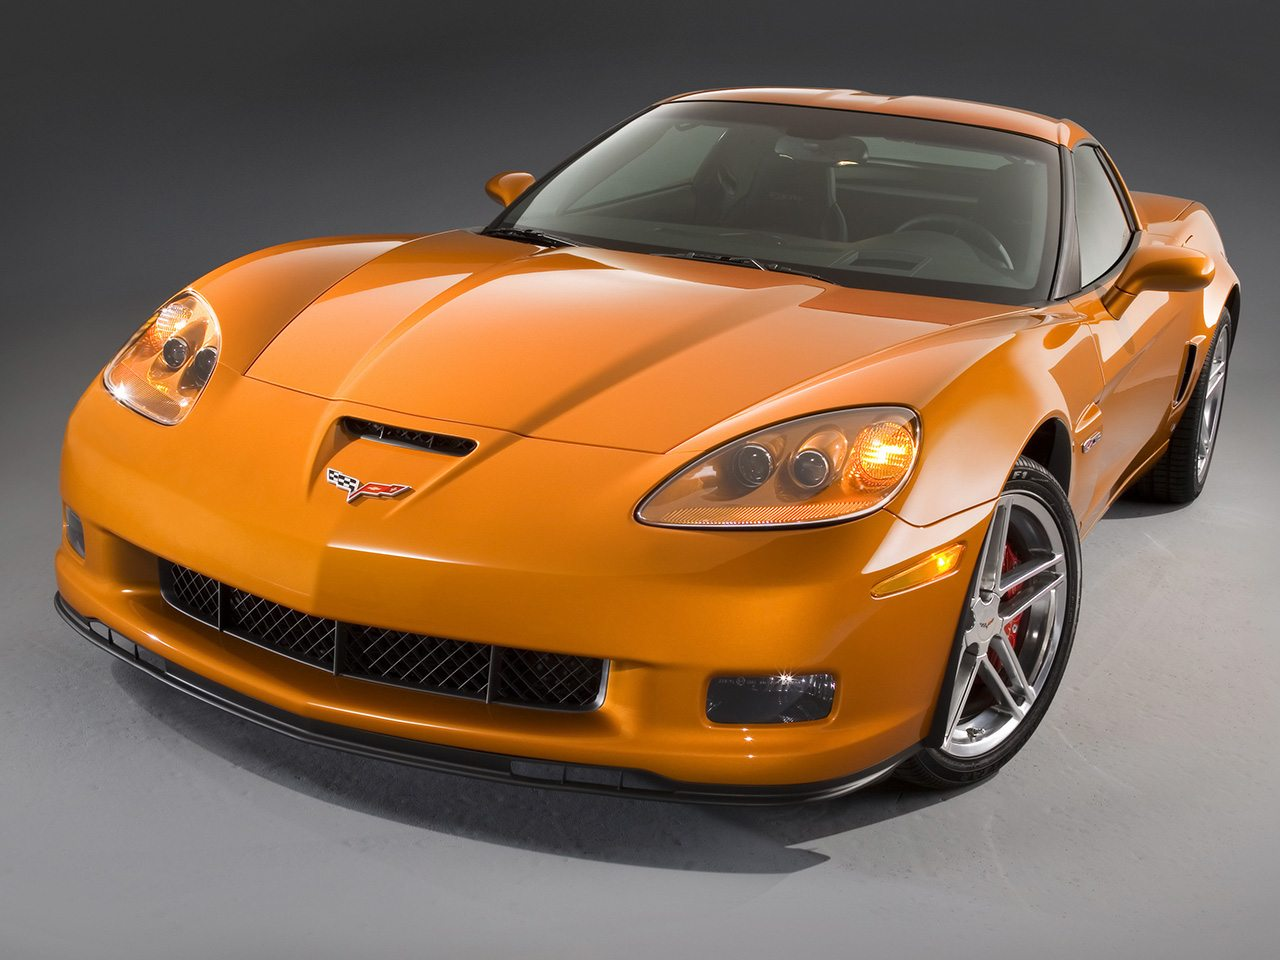 2007 c6 corvette image gallery pictures. Black Bedroom Furniture Sets. Home Design Ideas